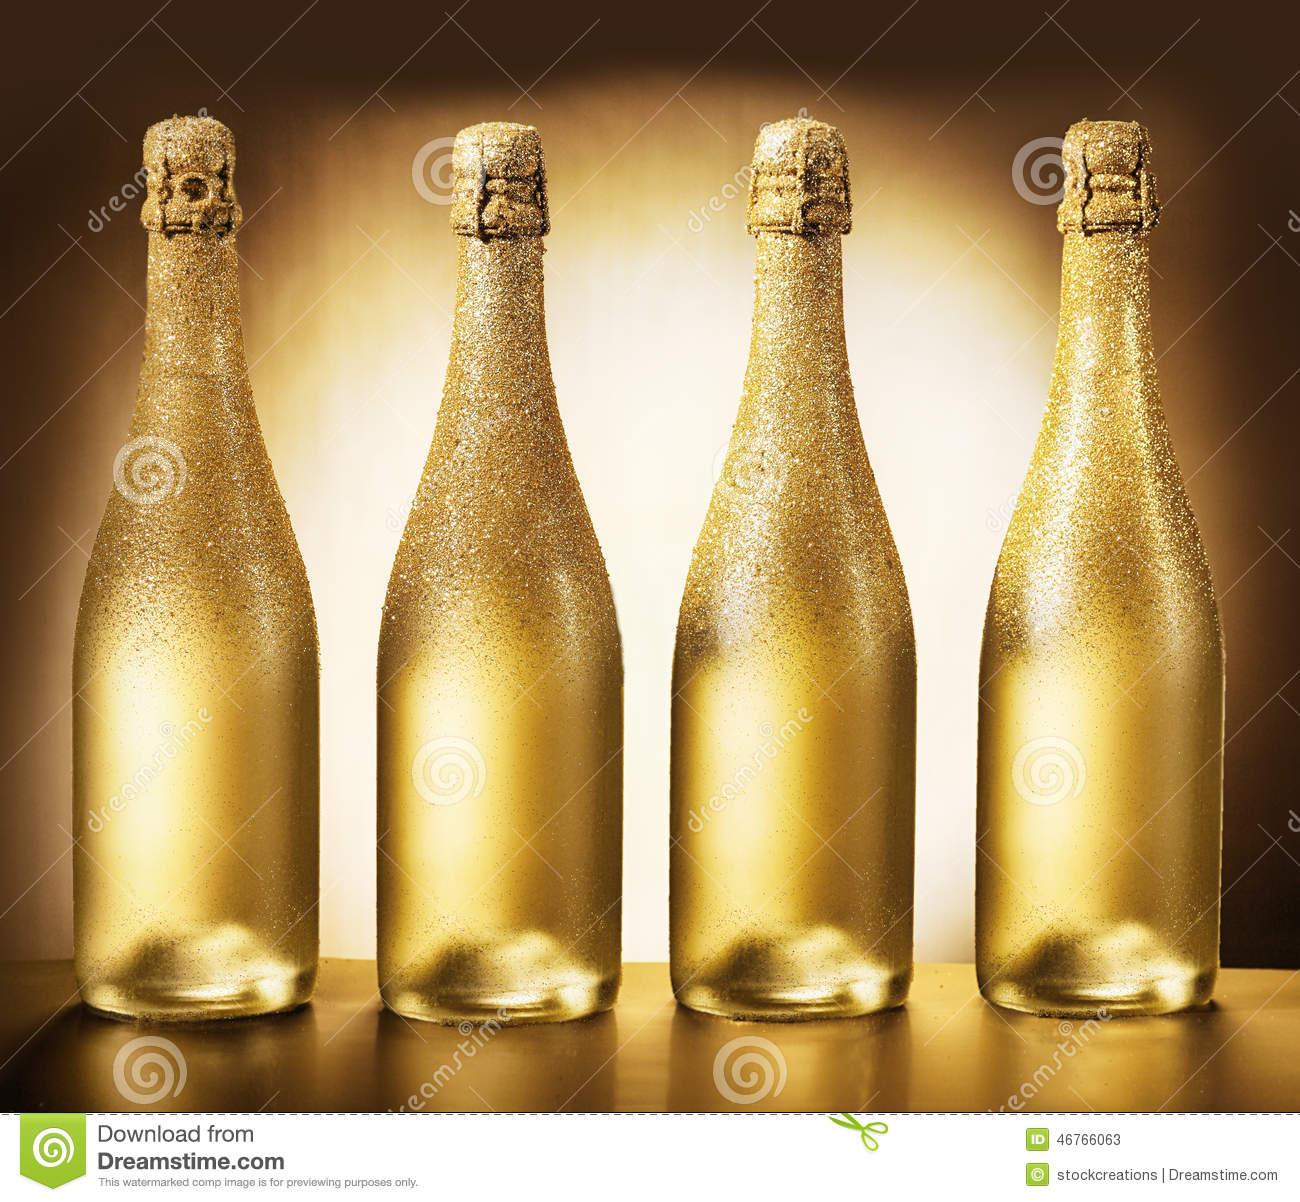 Four Bottles Of Golden Champagne Stock Image